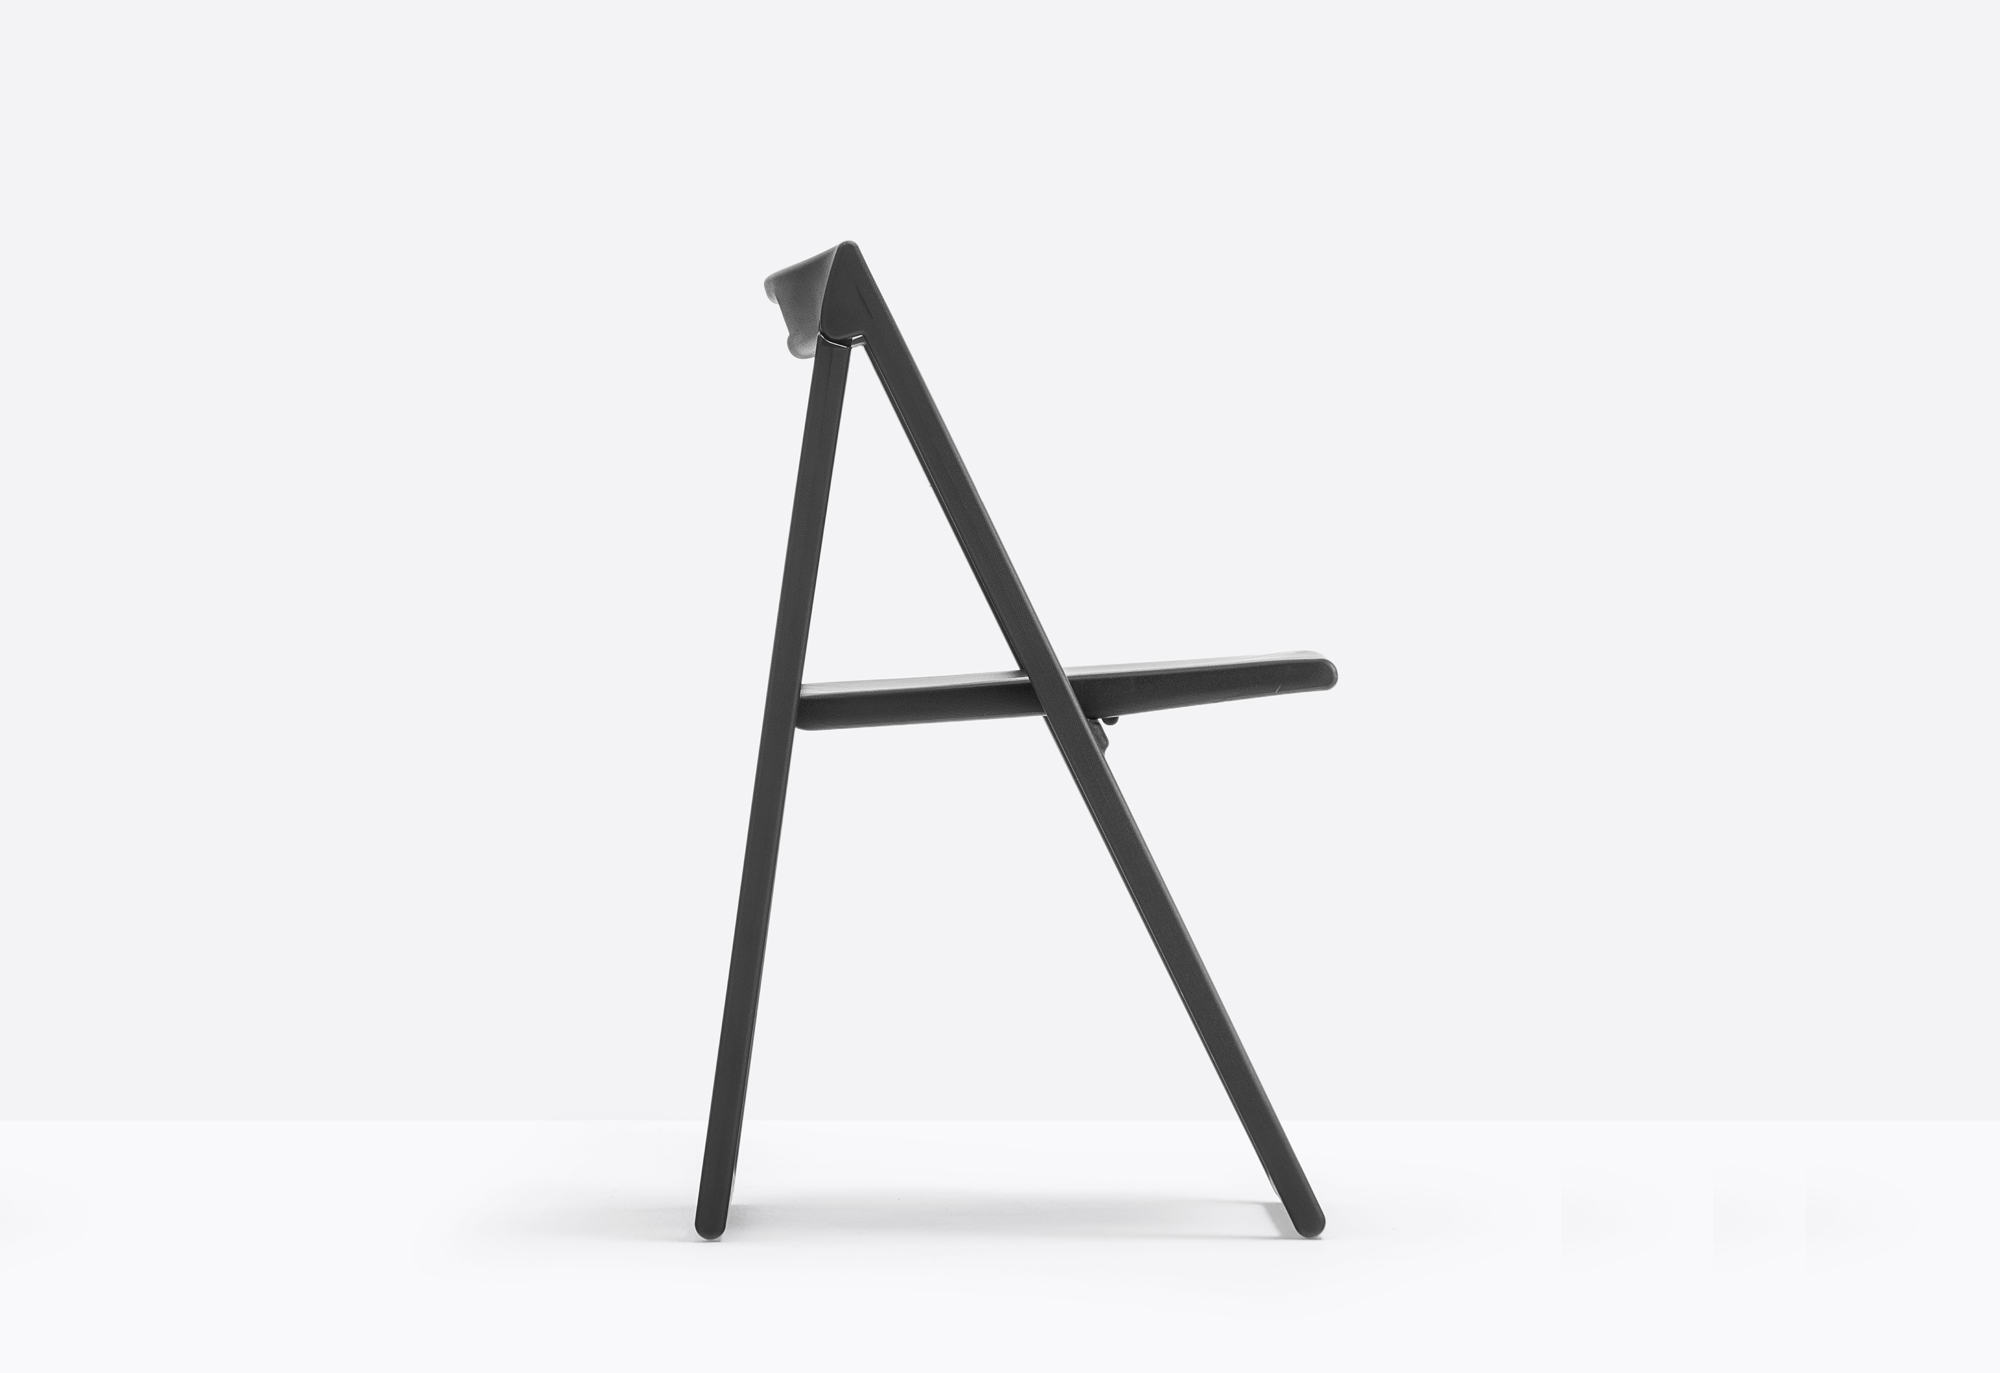 Enjoy Folding Chair - Resistant and lightweight, Enjoy is a folding chair easy to handle and carry. Once folded takes up a minimal space of 95mm. Made of polypropylene charged with glass fibre, it is suitable also for outdoor. | Matter of Stuff